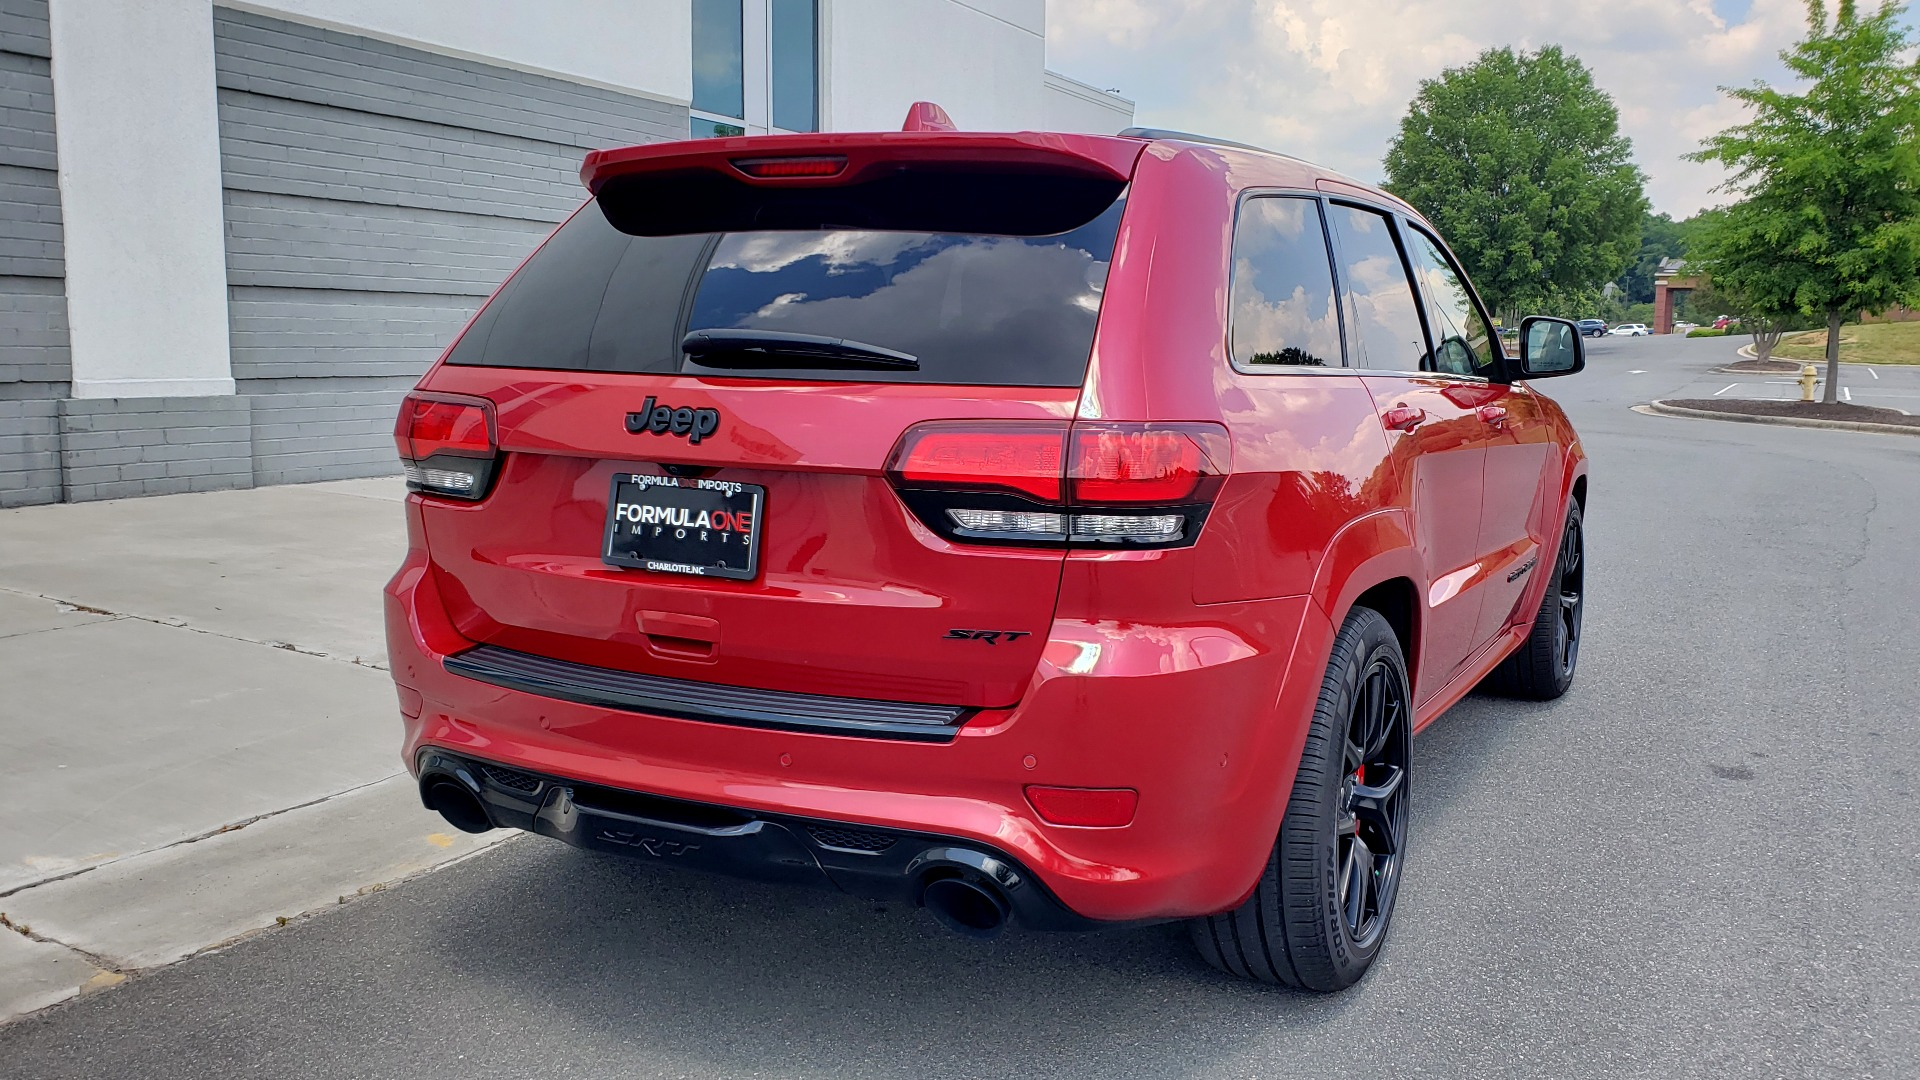 Used 2018 Jeep GRAND CHEROKEE SRT 4X4 / 6.4L HEMI (475HP) / NAV / SUNROOF / H/K SND / REARVIEW for sale Sold at Formula Imports in Charlotte NC 28227 11